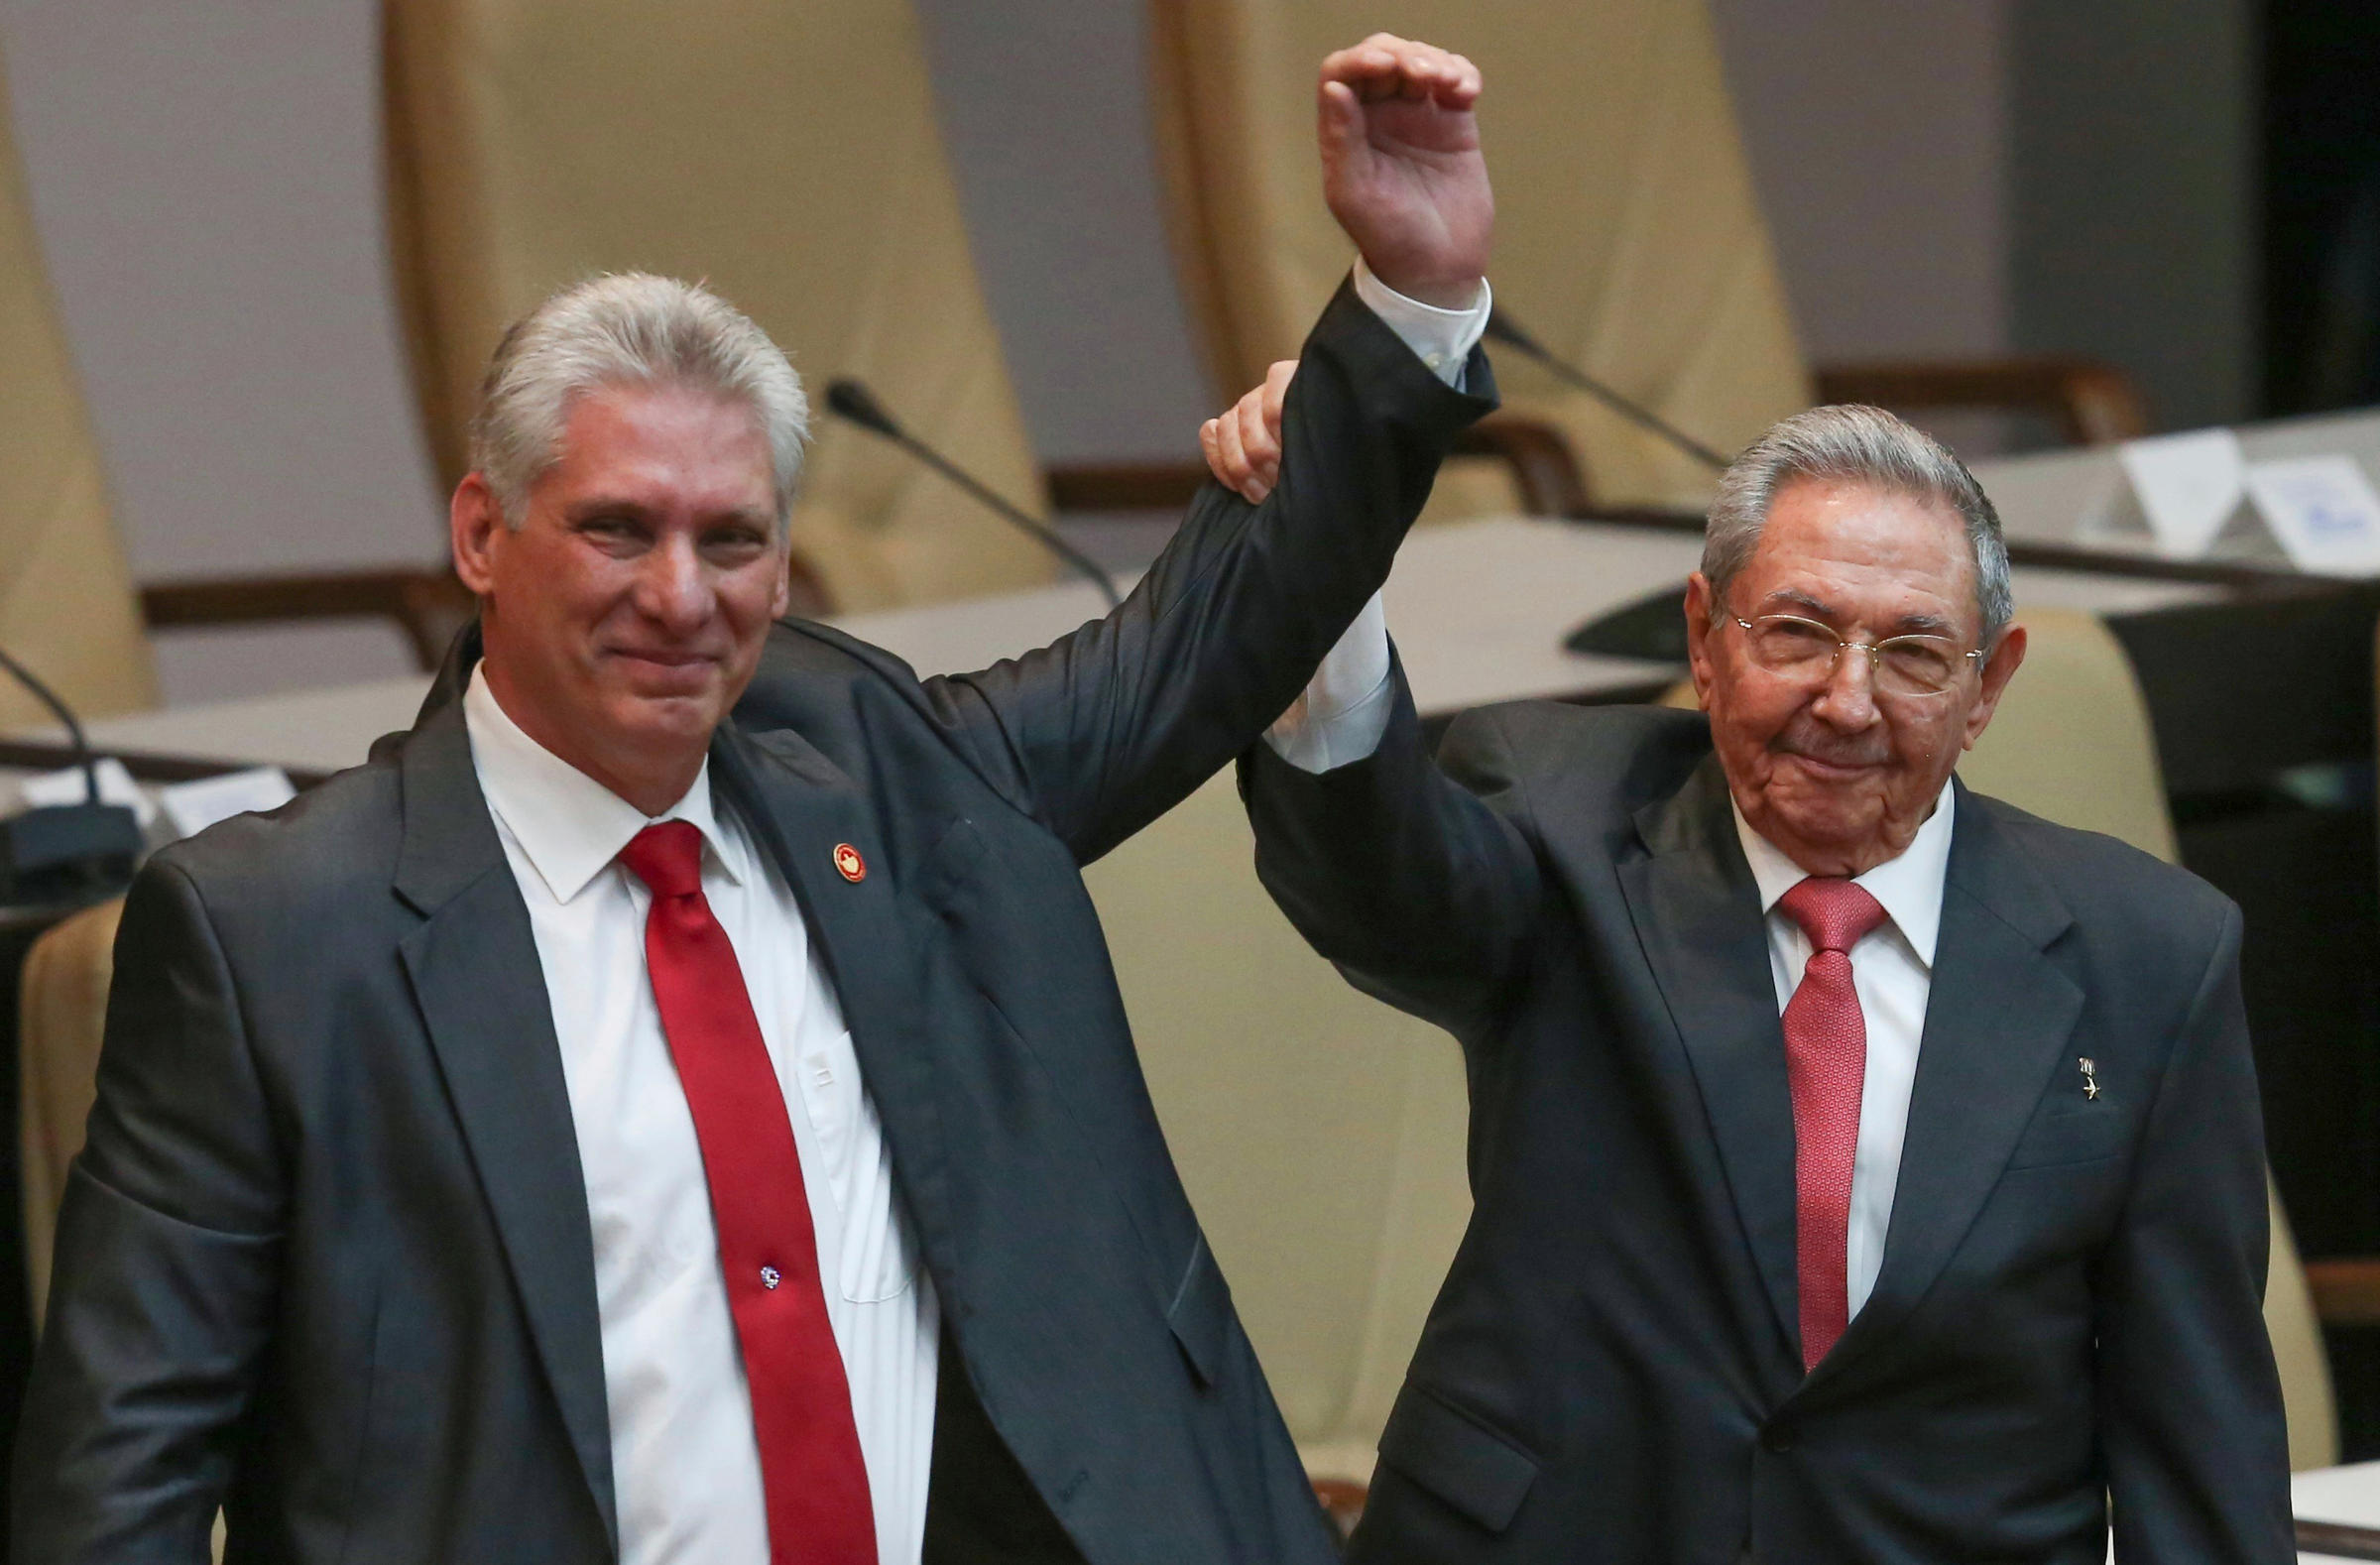 South Africa: President Ramaphosa congratulates the new President of Cuba